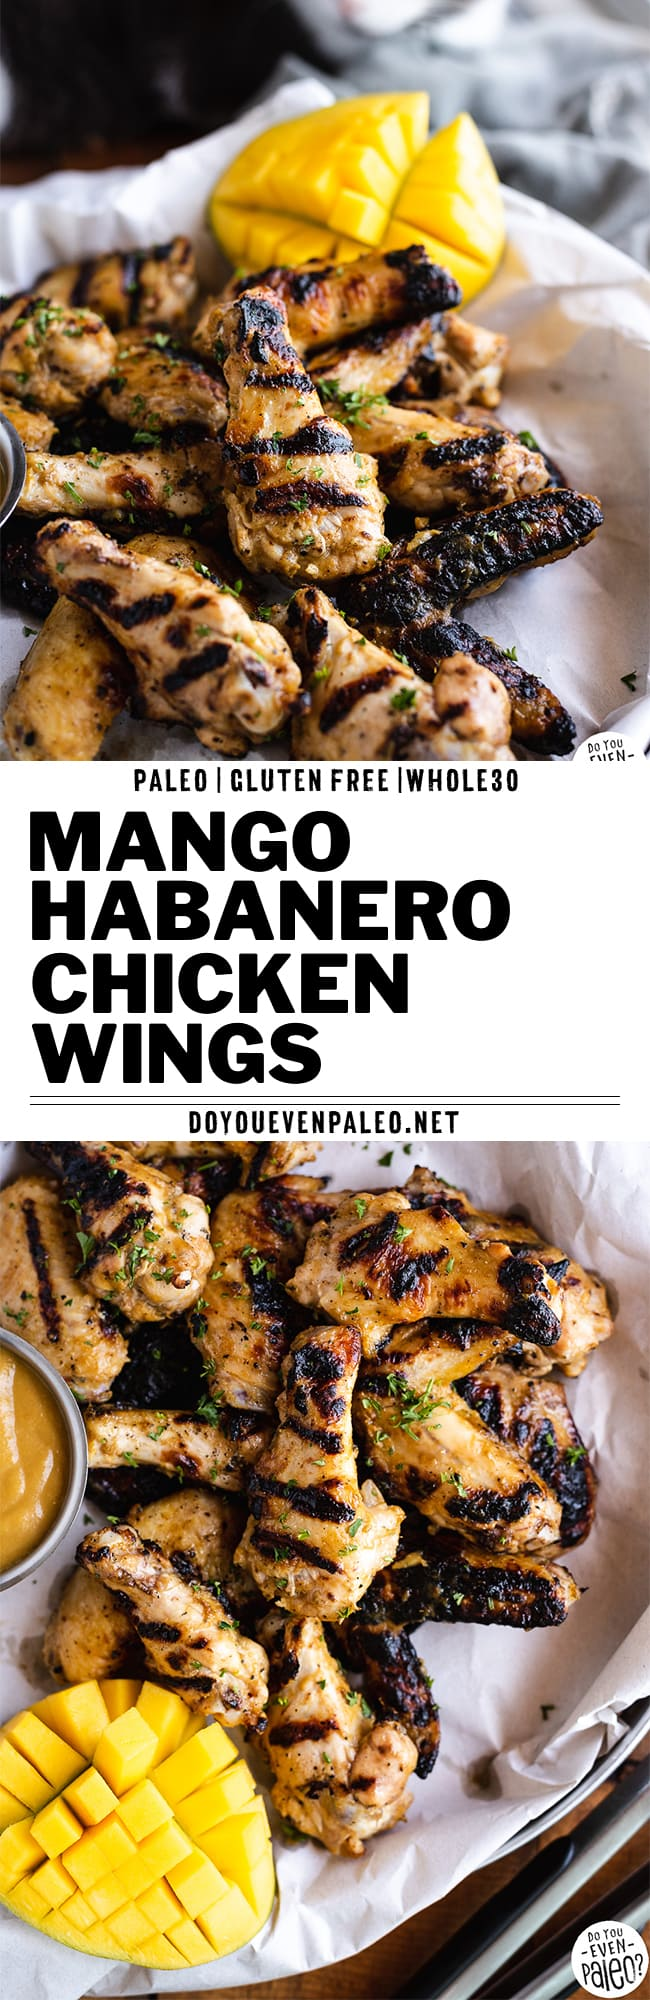 Whole30 Mango Habanero Chicken Wings Recipe